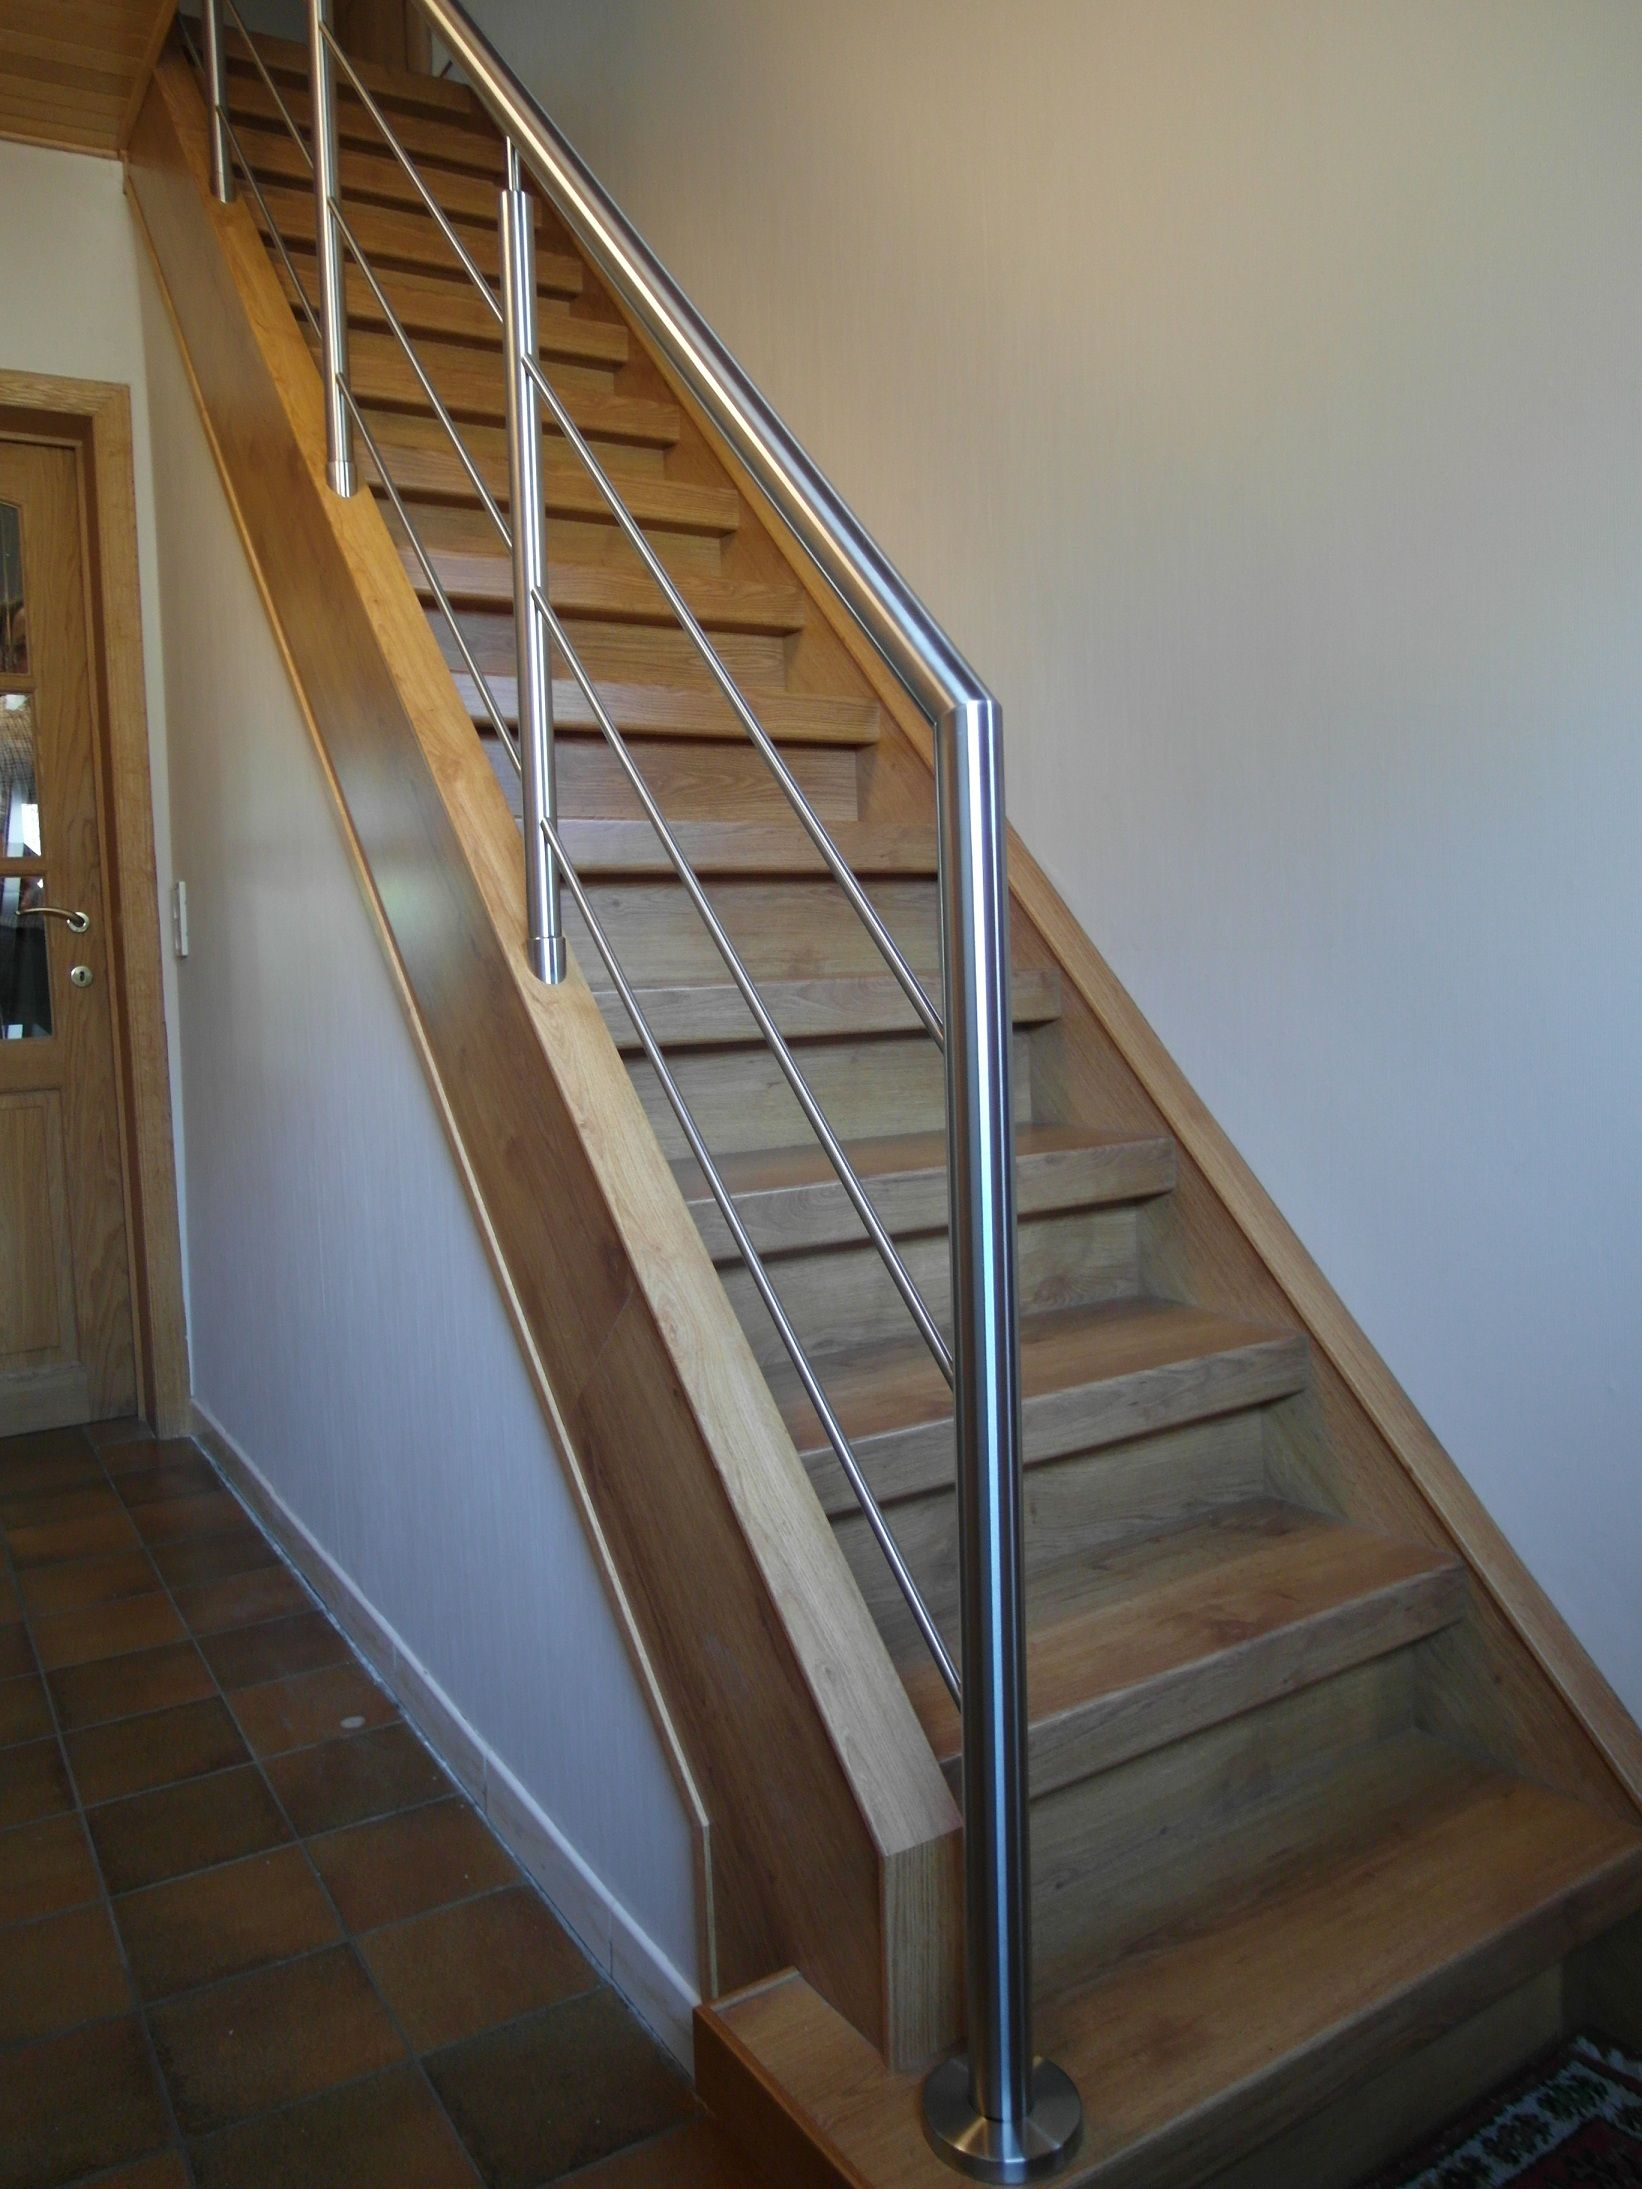 Rvs balustrade schuin op trap met knieregels rvs glazen balustrades pinterest house - Balustrade trap ...